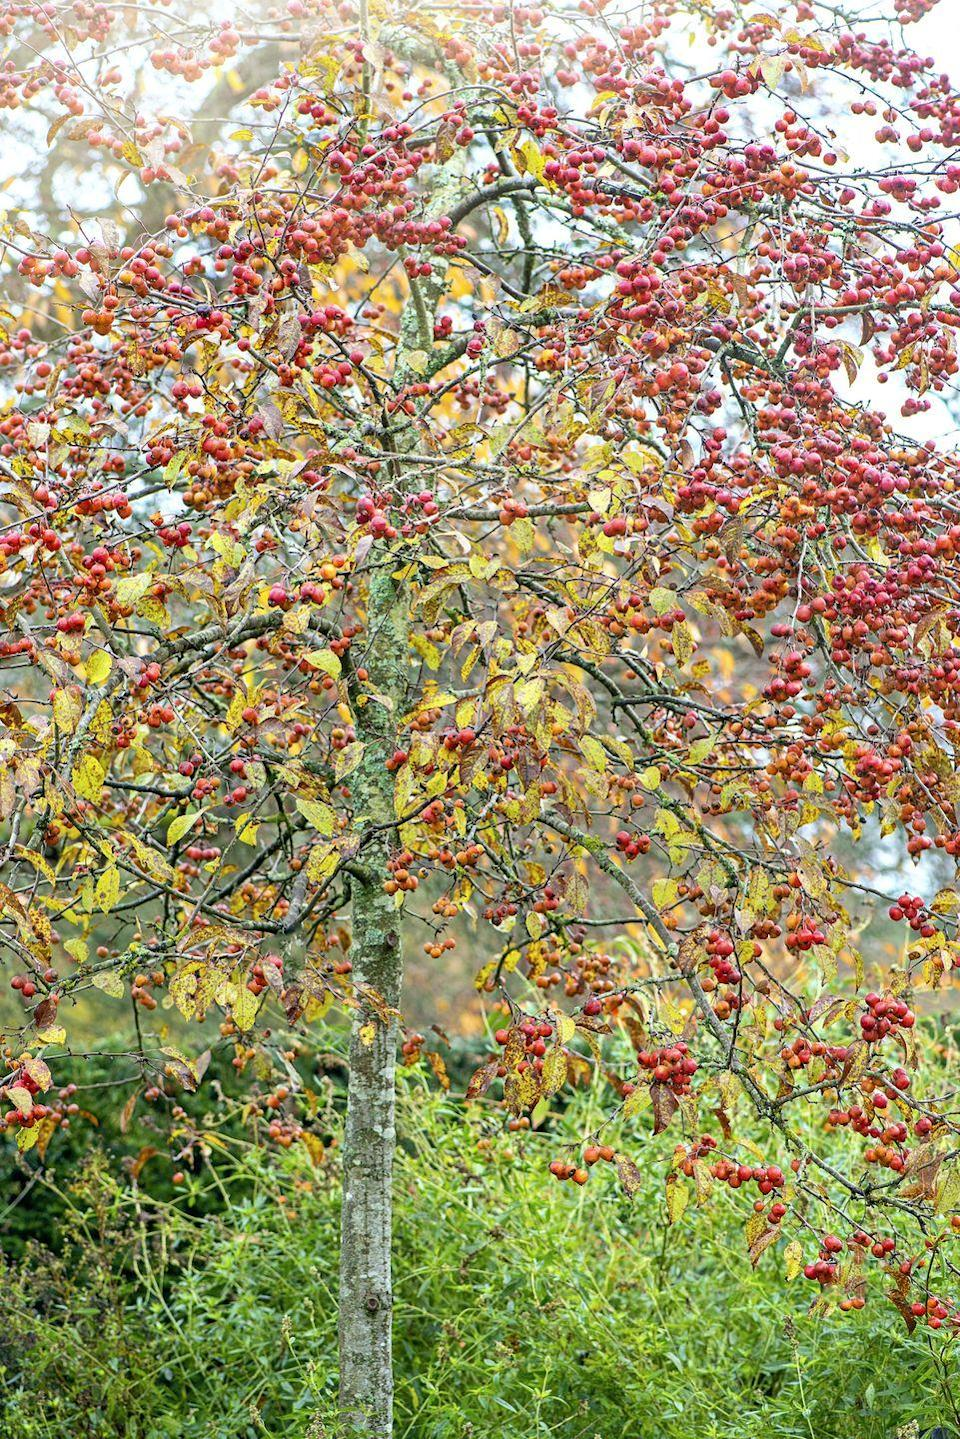 """<p>Associated with love and marriage, crap apple trees are brilliant to plant if you have the space. While the apples themselves might be small and sour, you can make some amazing recipes from crab apple trees including jams and jellies. </p><p><a class=""""link rapid-noclick-resp"""" href=""""https://www.thompson-morgan.com/p/crab-apple-butterball/TKA1781TM"""" rel=""""nofollow noopener"""" target=""""_blank"""" data-ylk=""""slk:BUY NOW VIA THOMPSON & MORGAN"""">BUY NOW VIA THOMPSON & MORGAN</a></p>"""